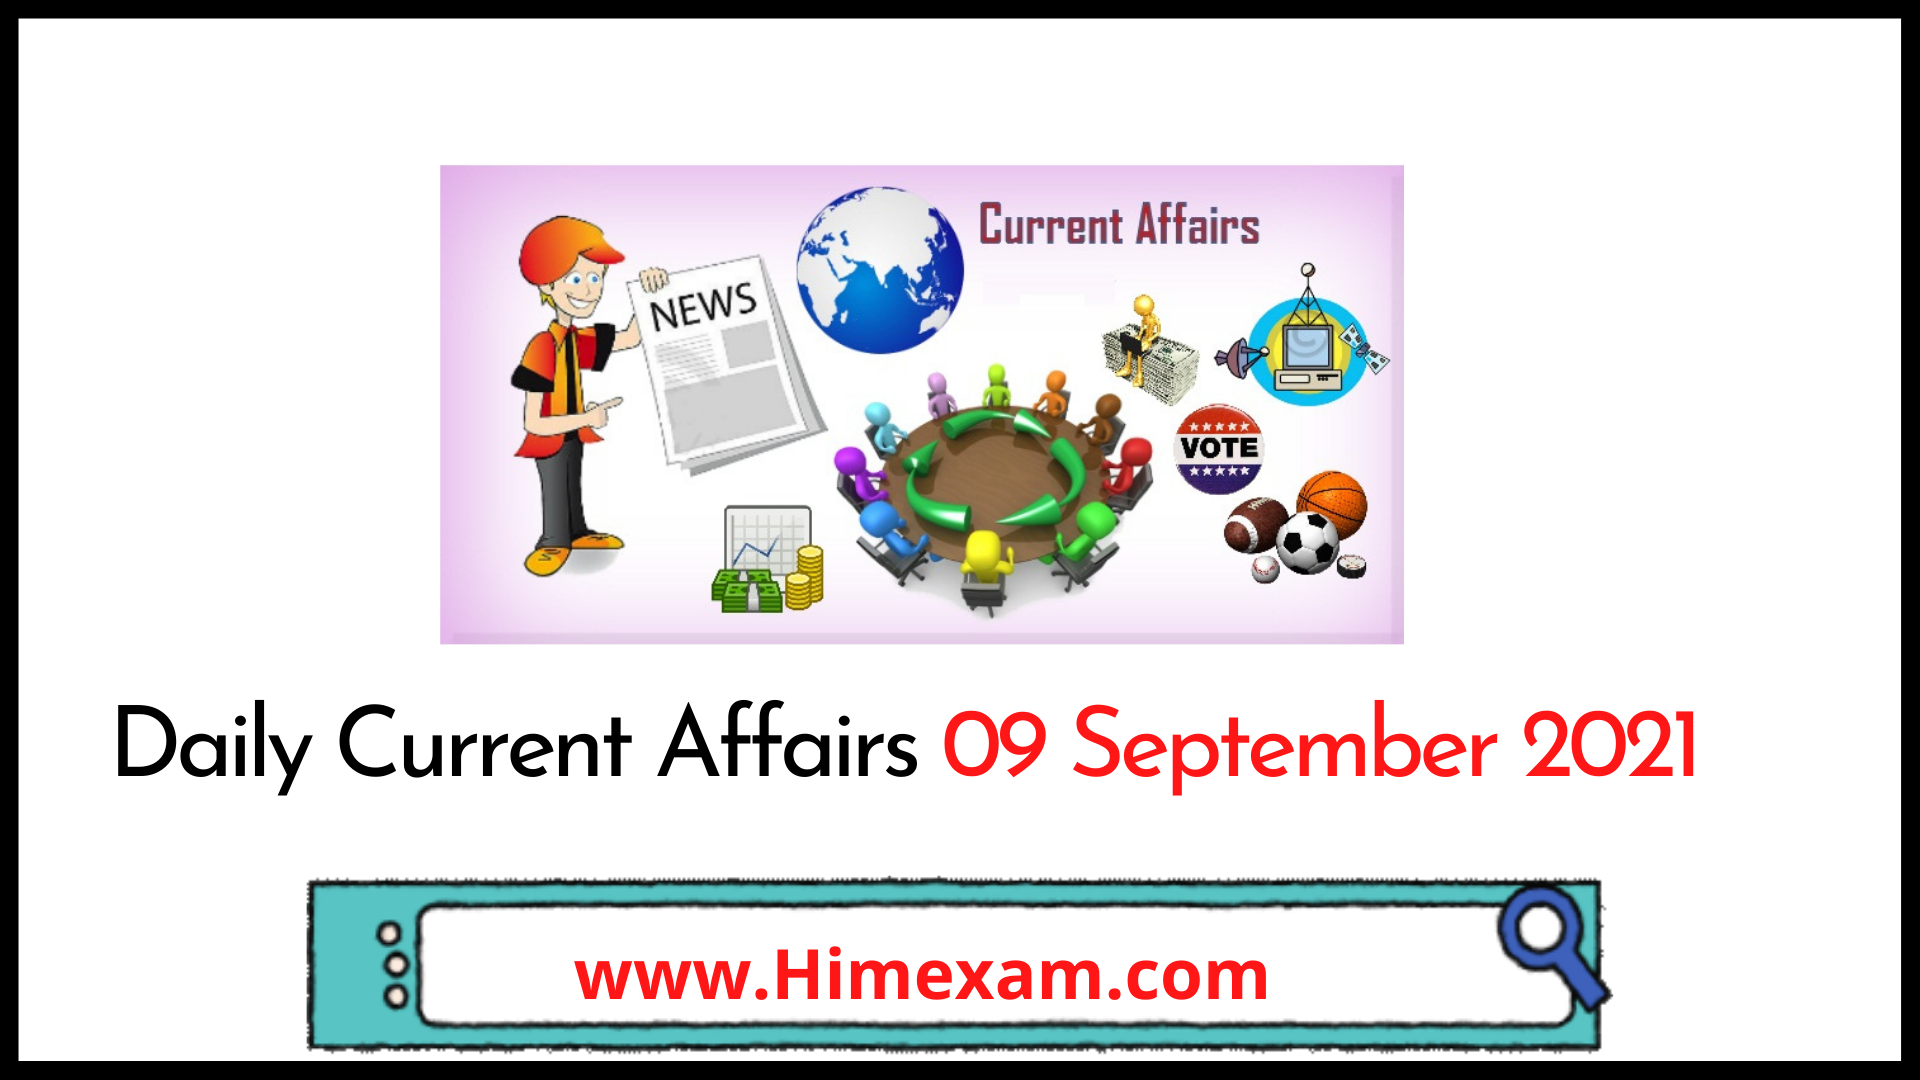 Daily Current Affairs 09 September 2021